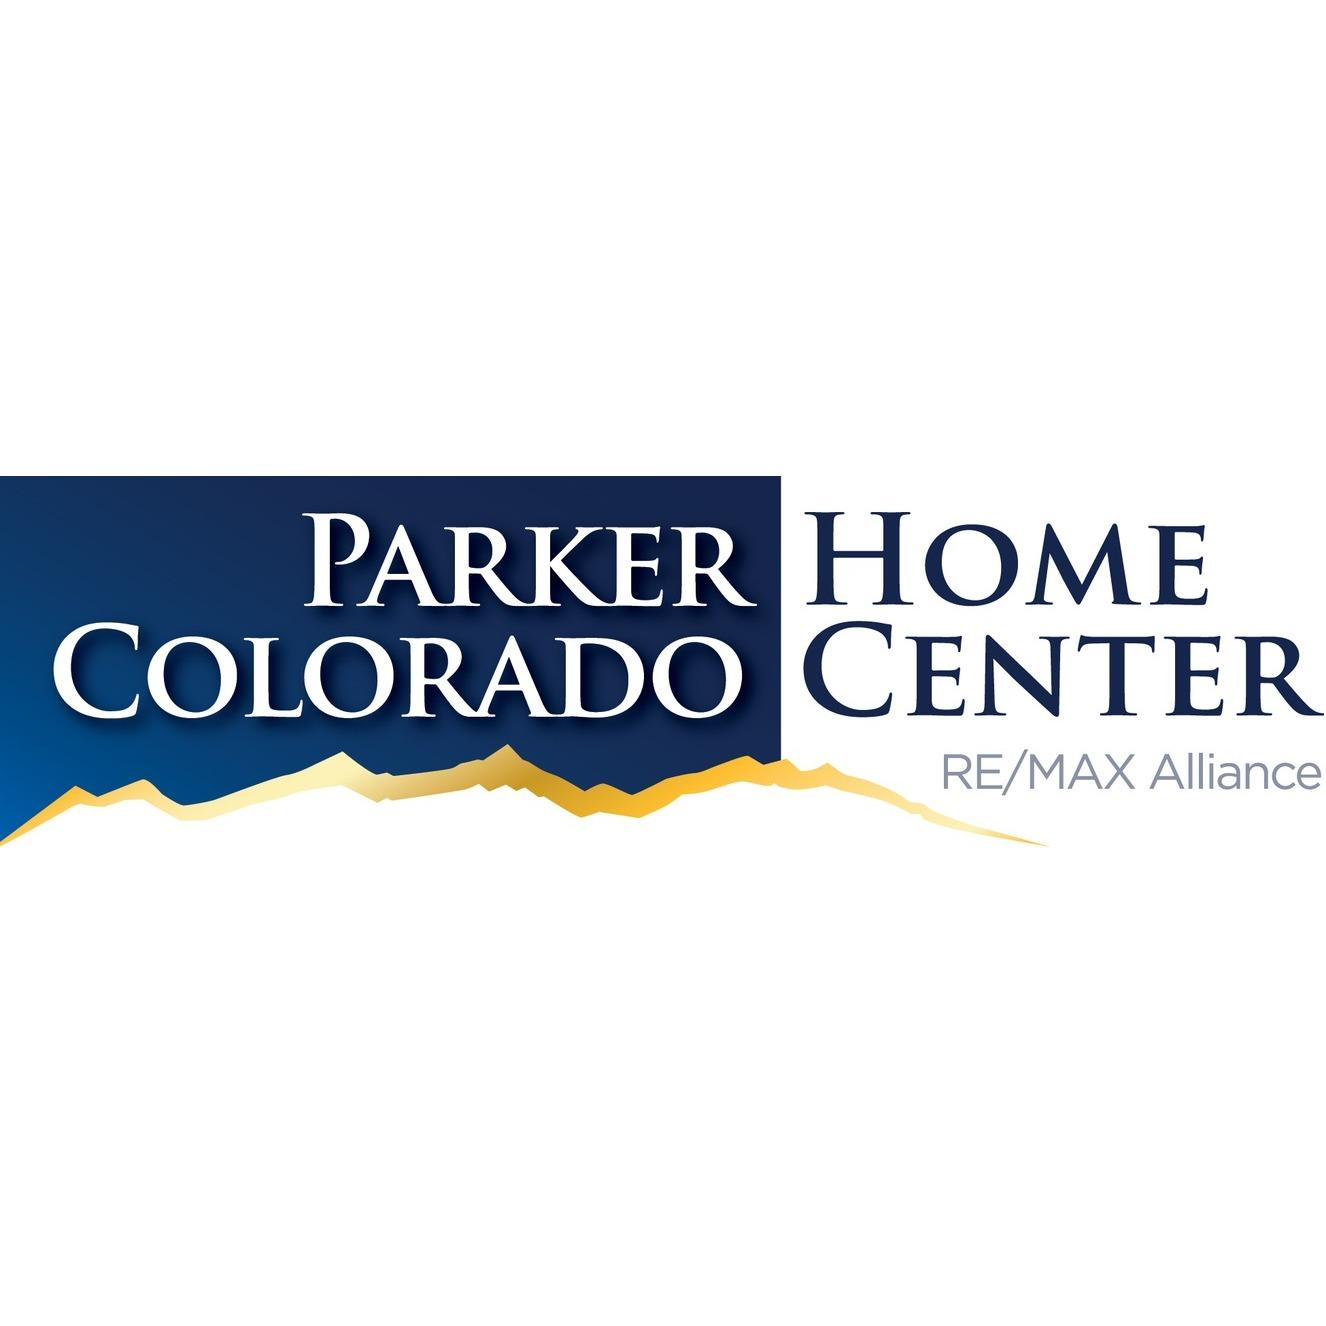 Parker Colorado Home Center At RE/MAX Alliance image 2